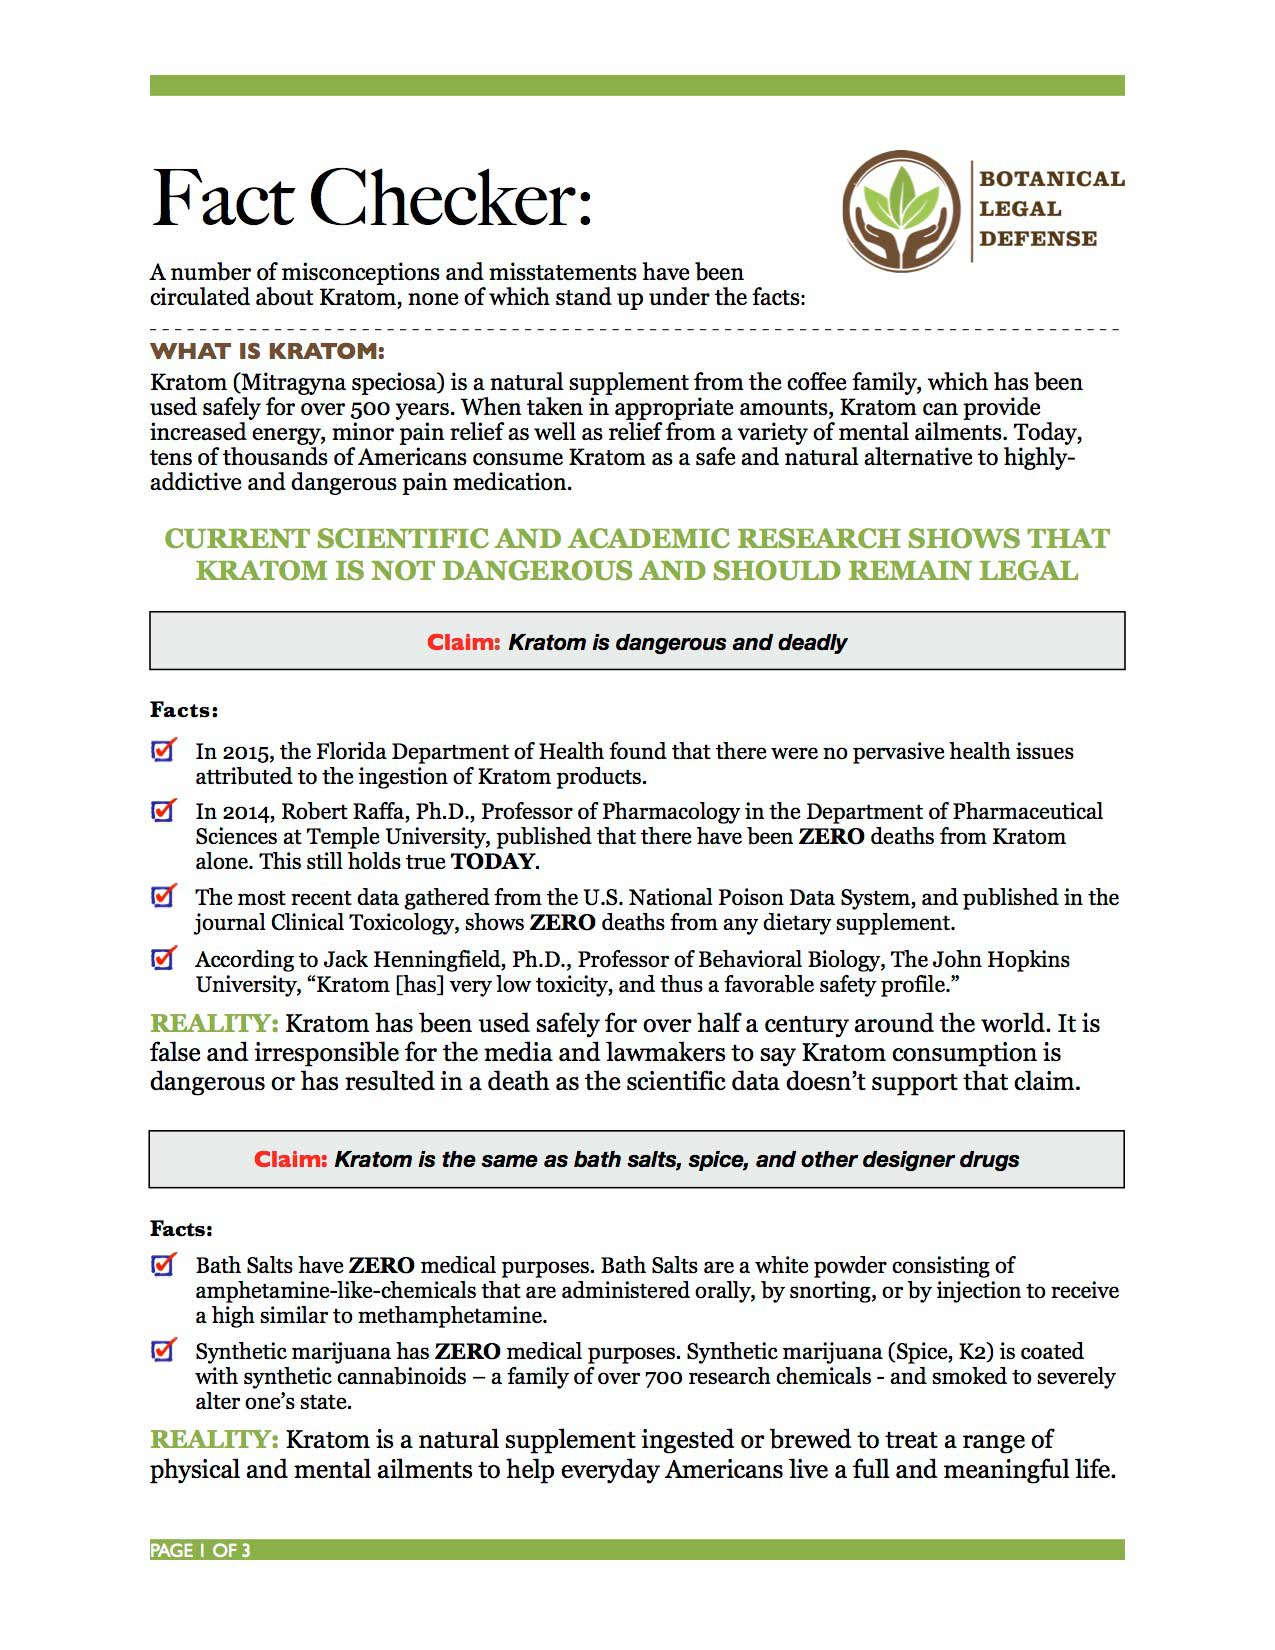 Kratom Misconceptions - Facts according to the Botanical Legal Defense Group